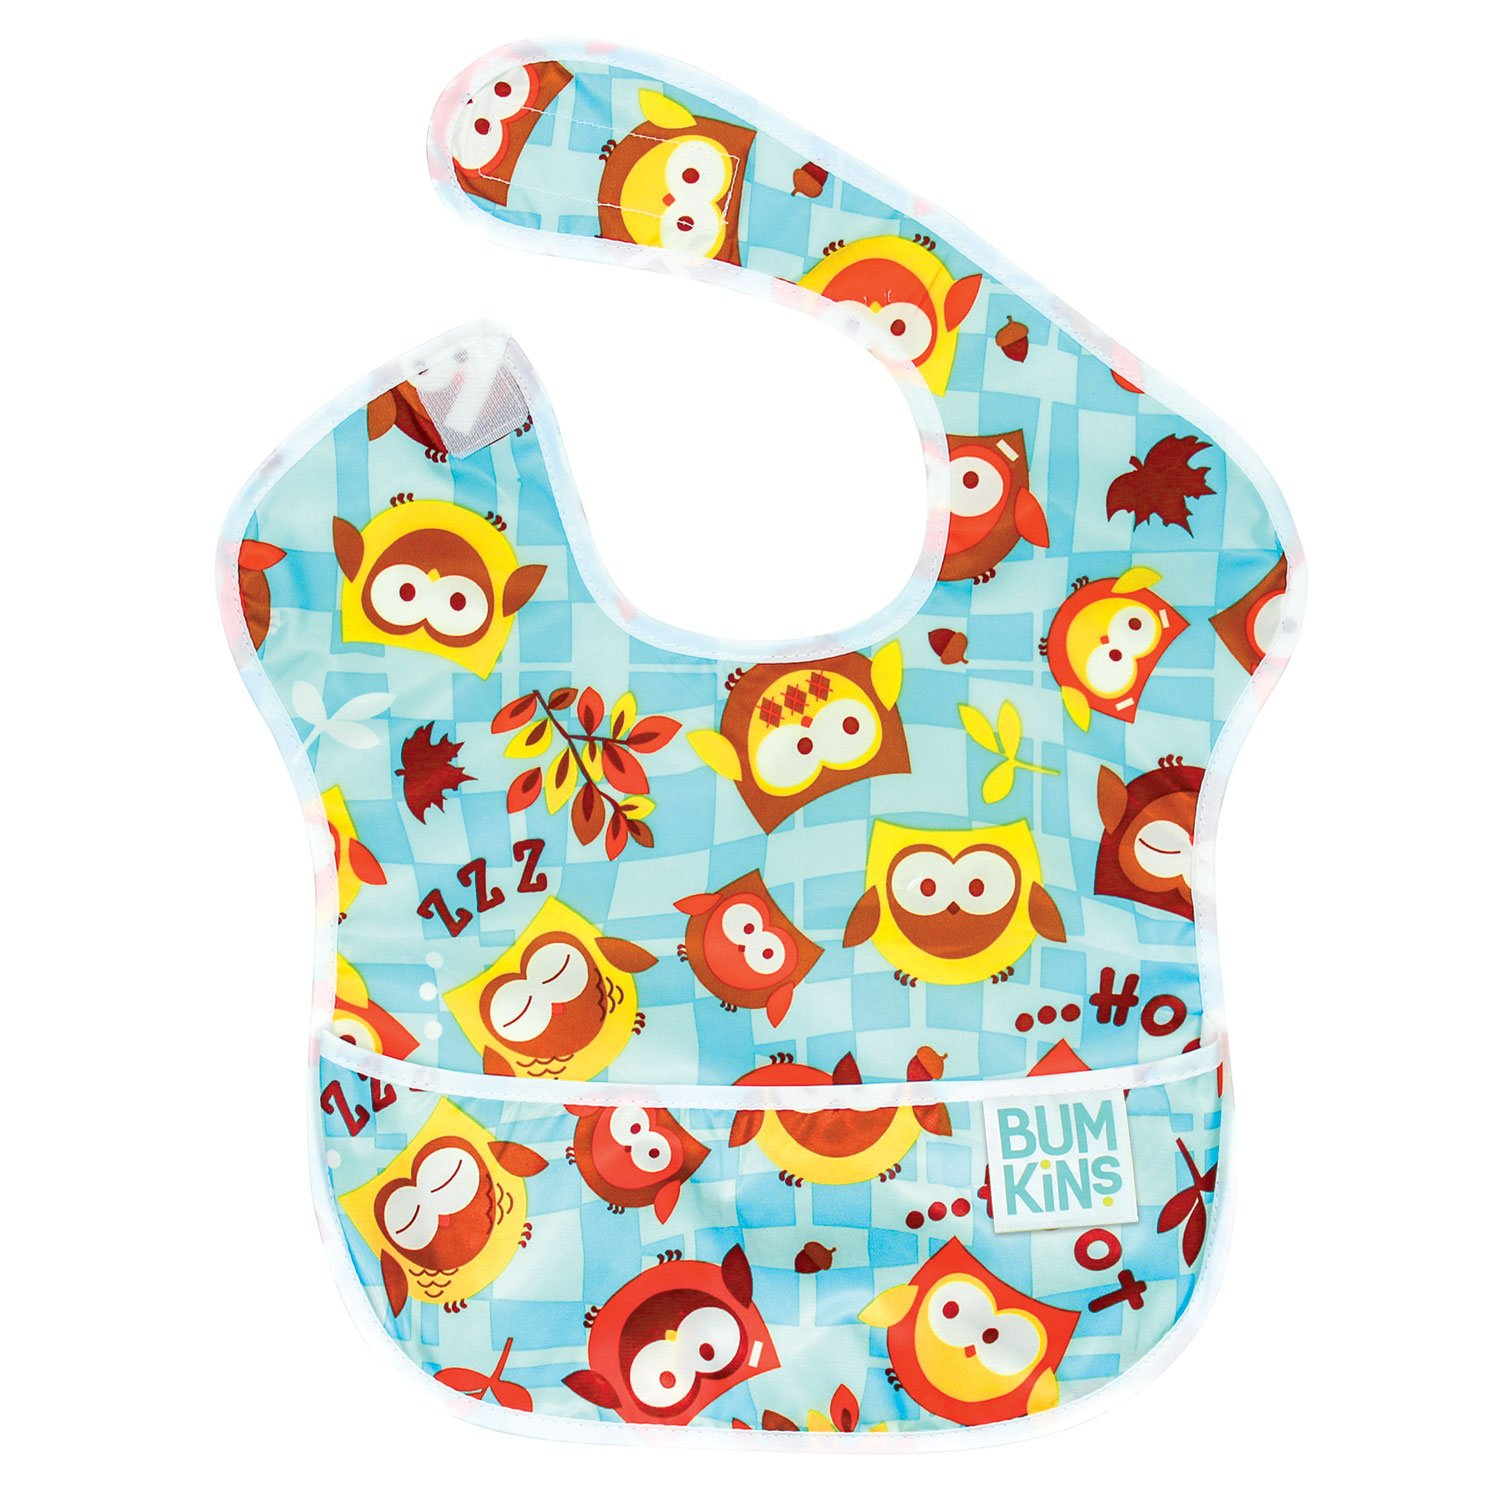 Bumkins Waterproof Superbib, Blue Owl S-240